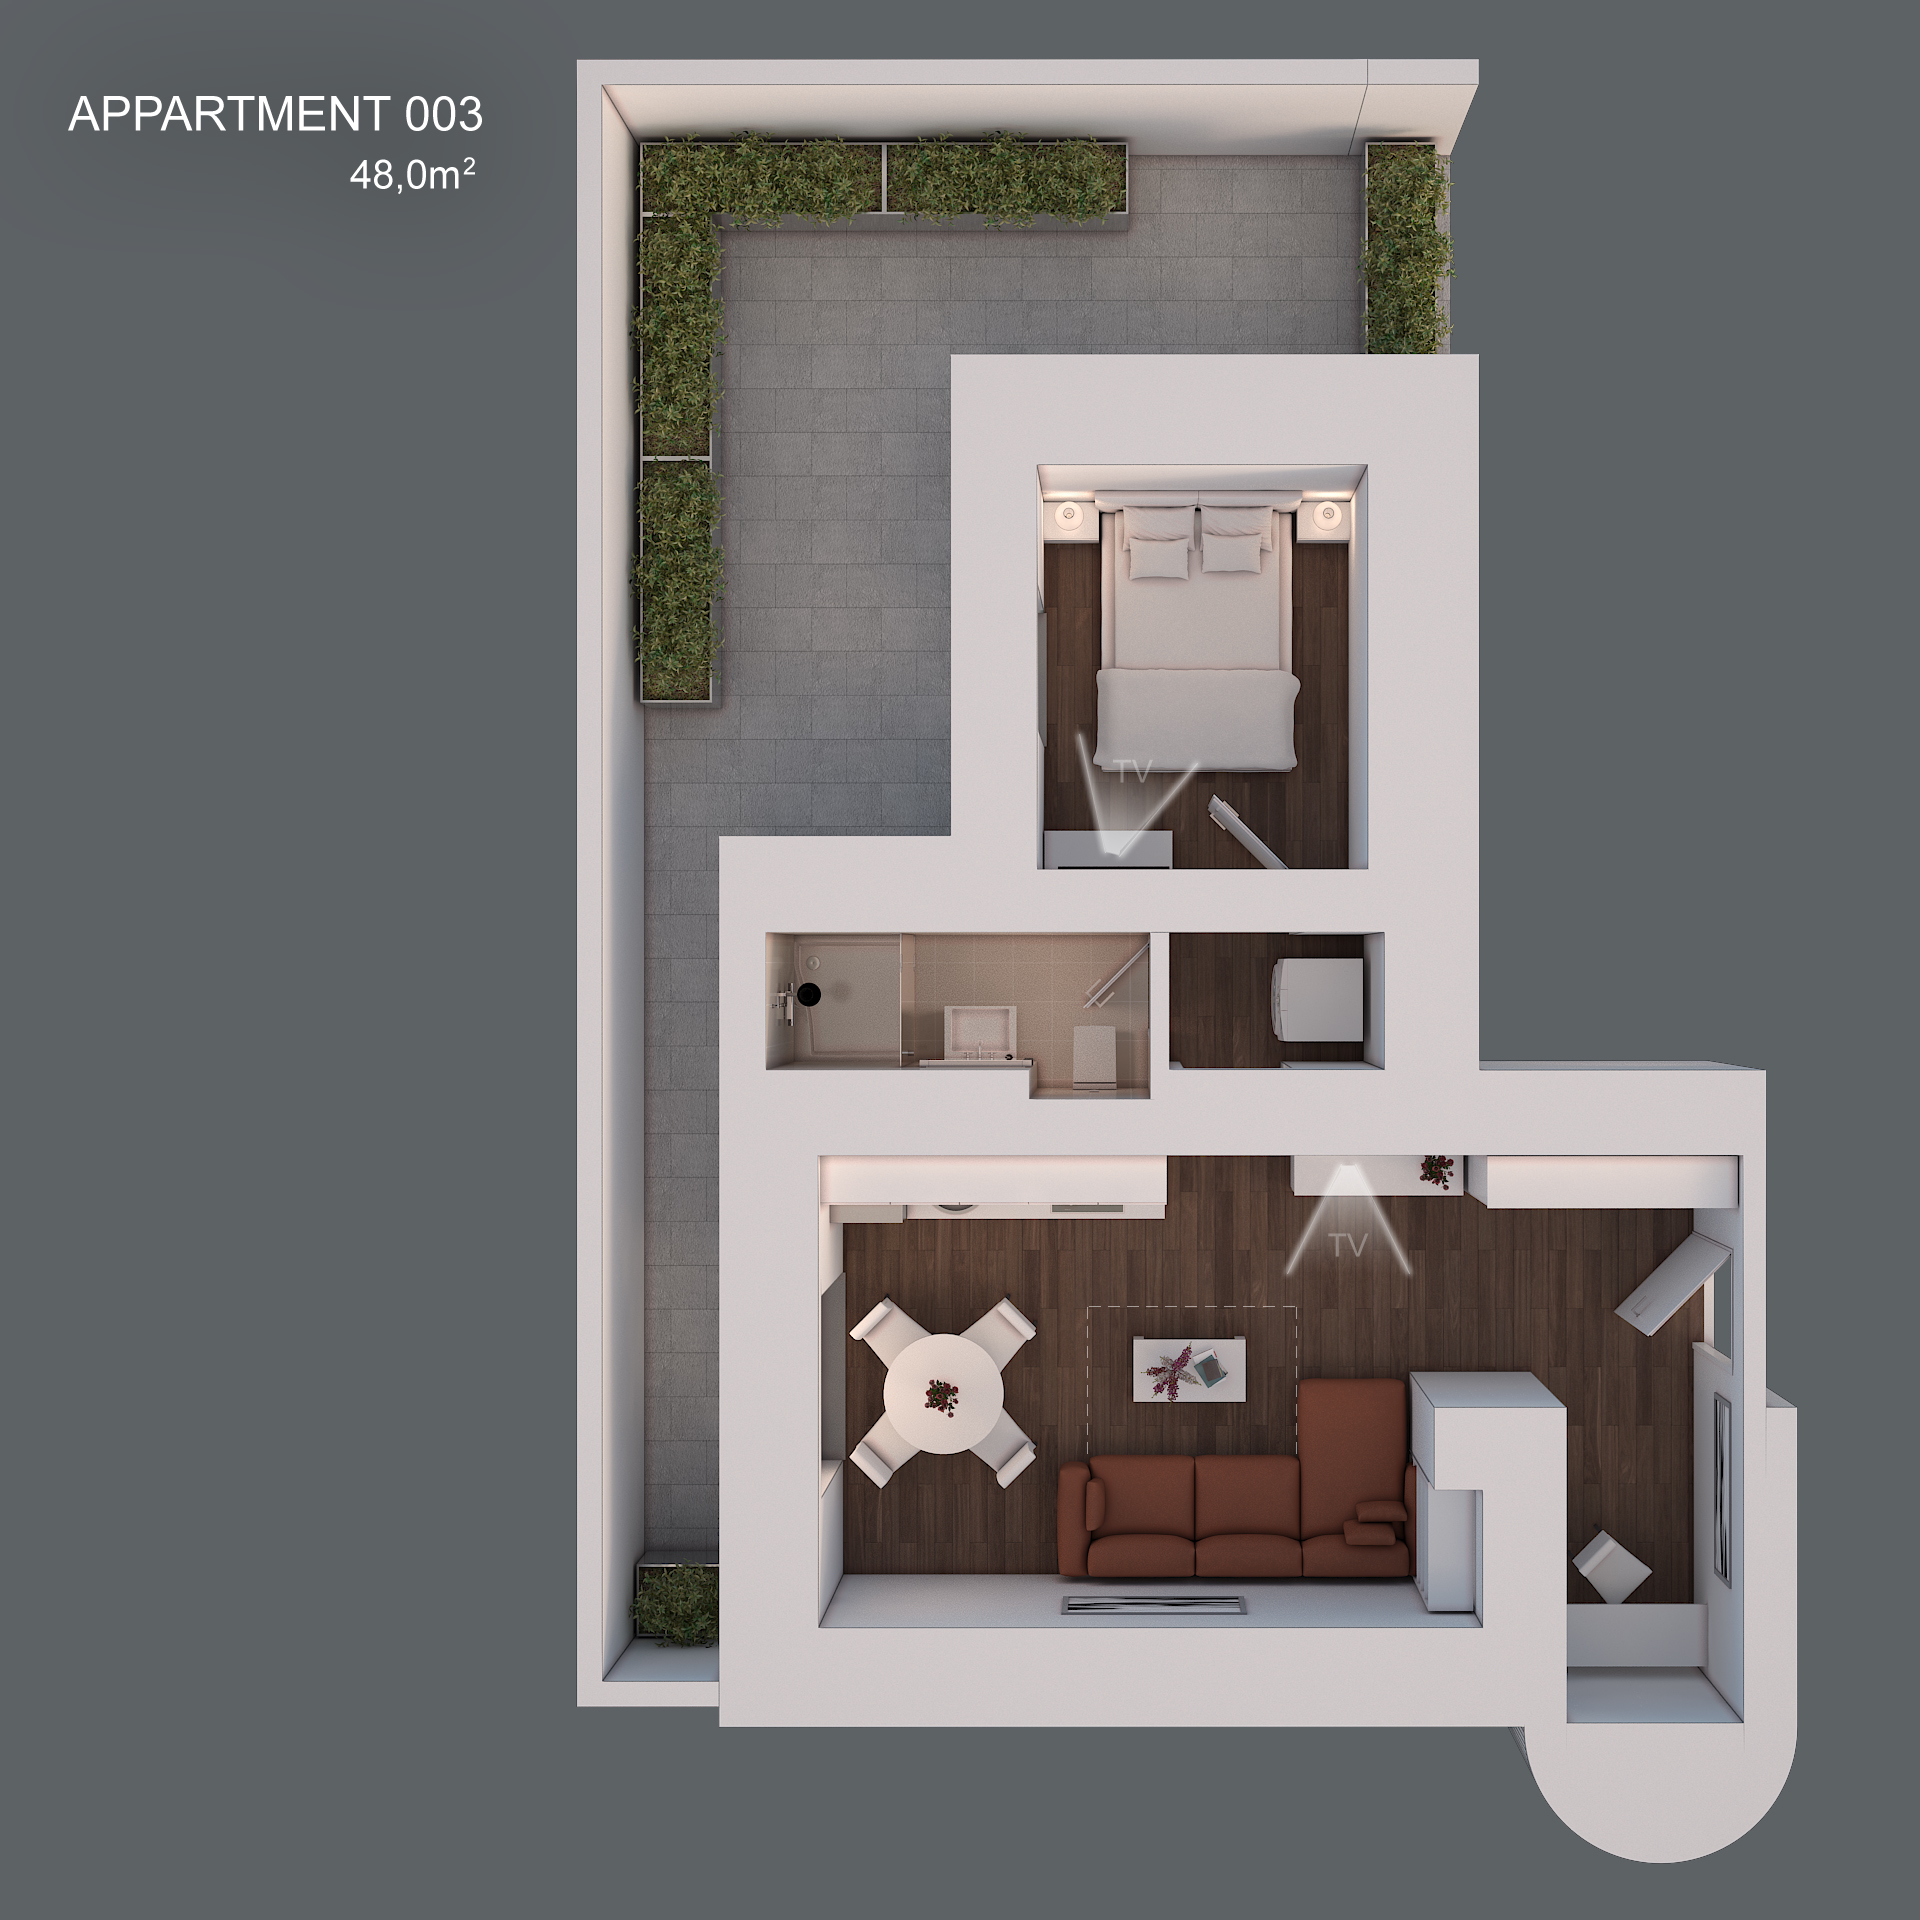 Apartment 003 layout